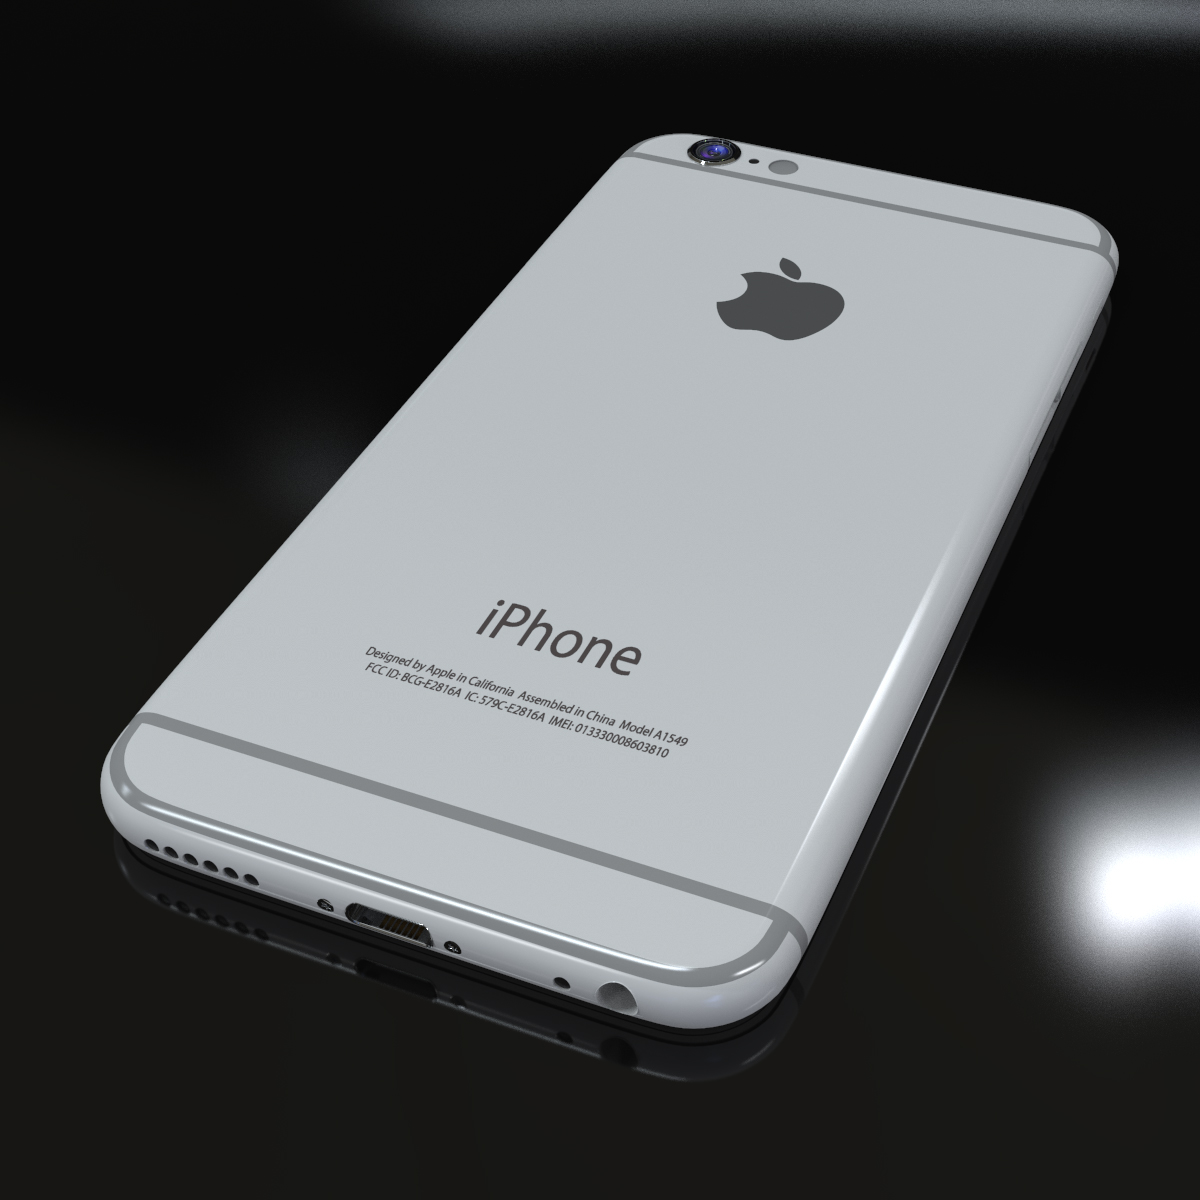 jabuka iphone 6s 3d model max fbx ma mb tekstura obj 278459